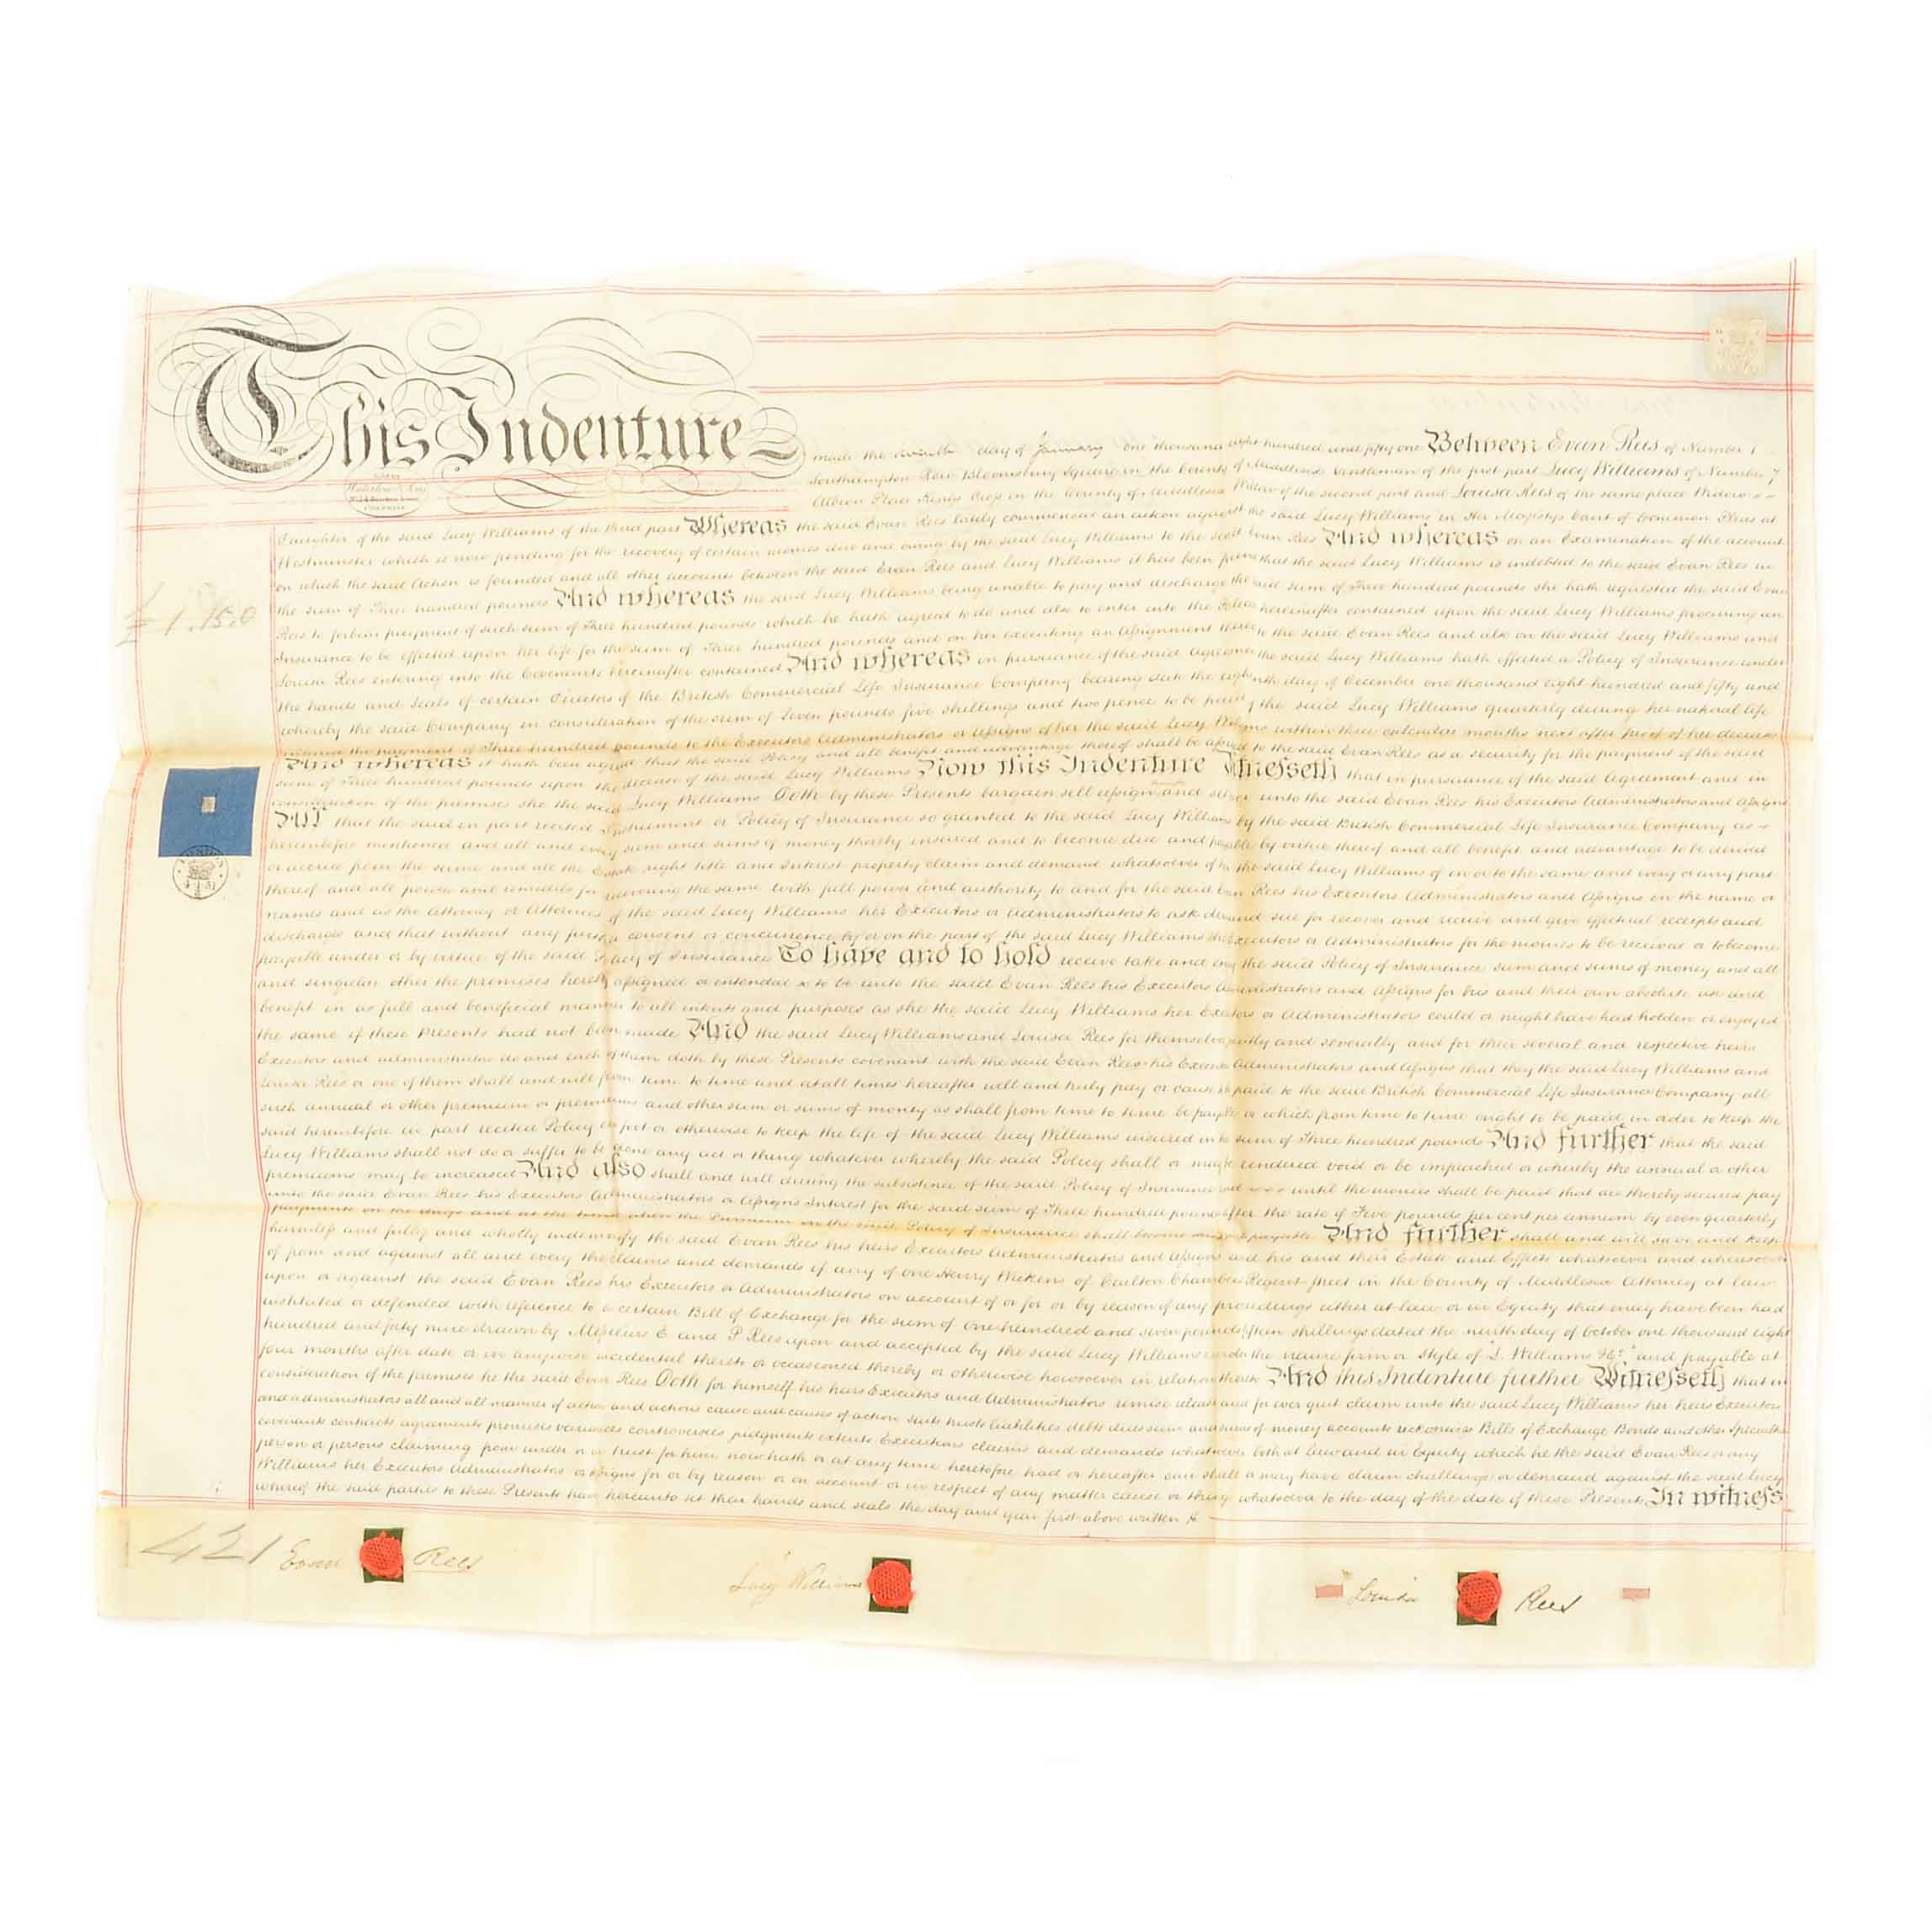 1851 Lithograph of an Indenture Document